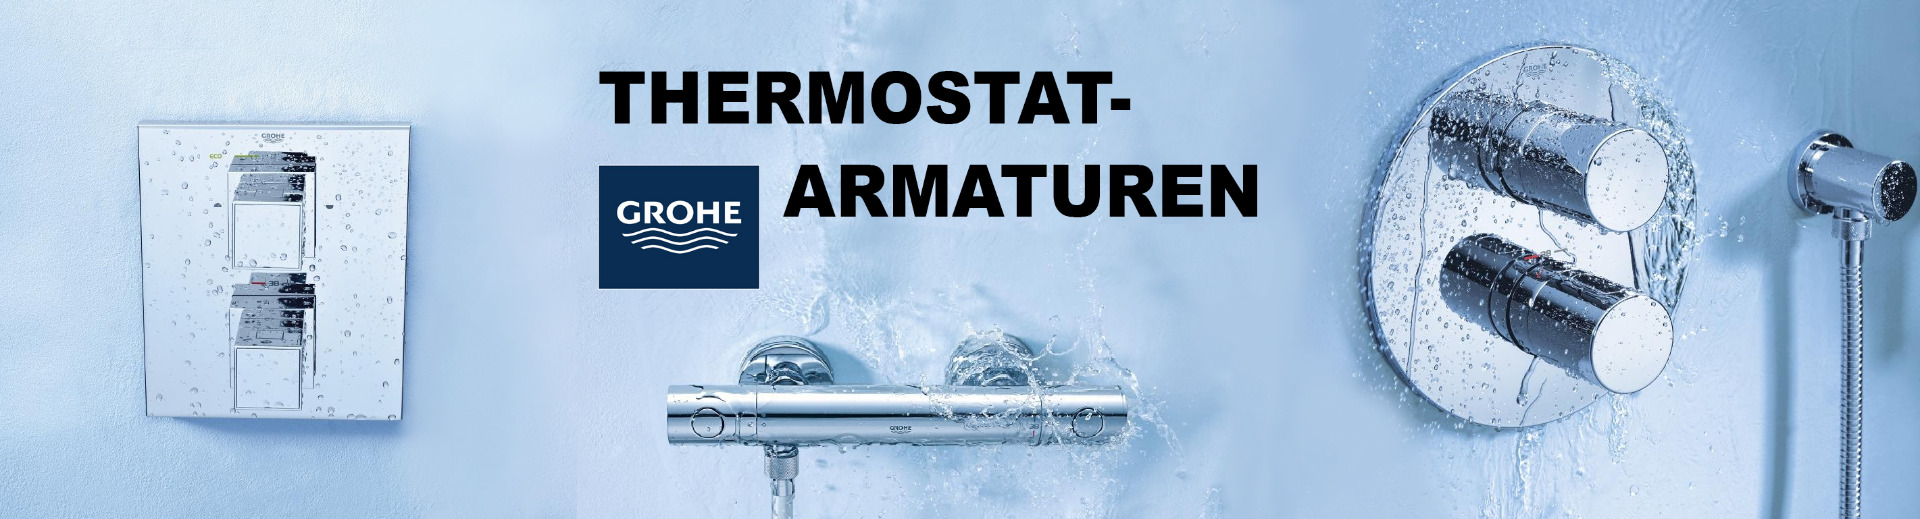 Grohe Thermostate